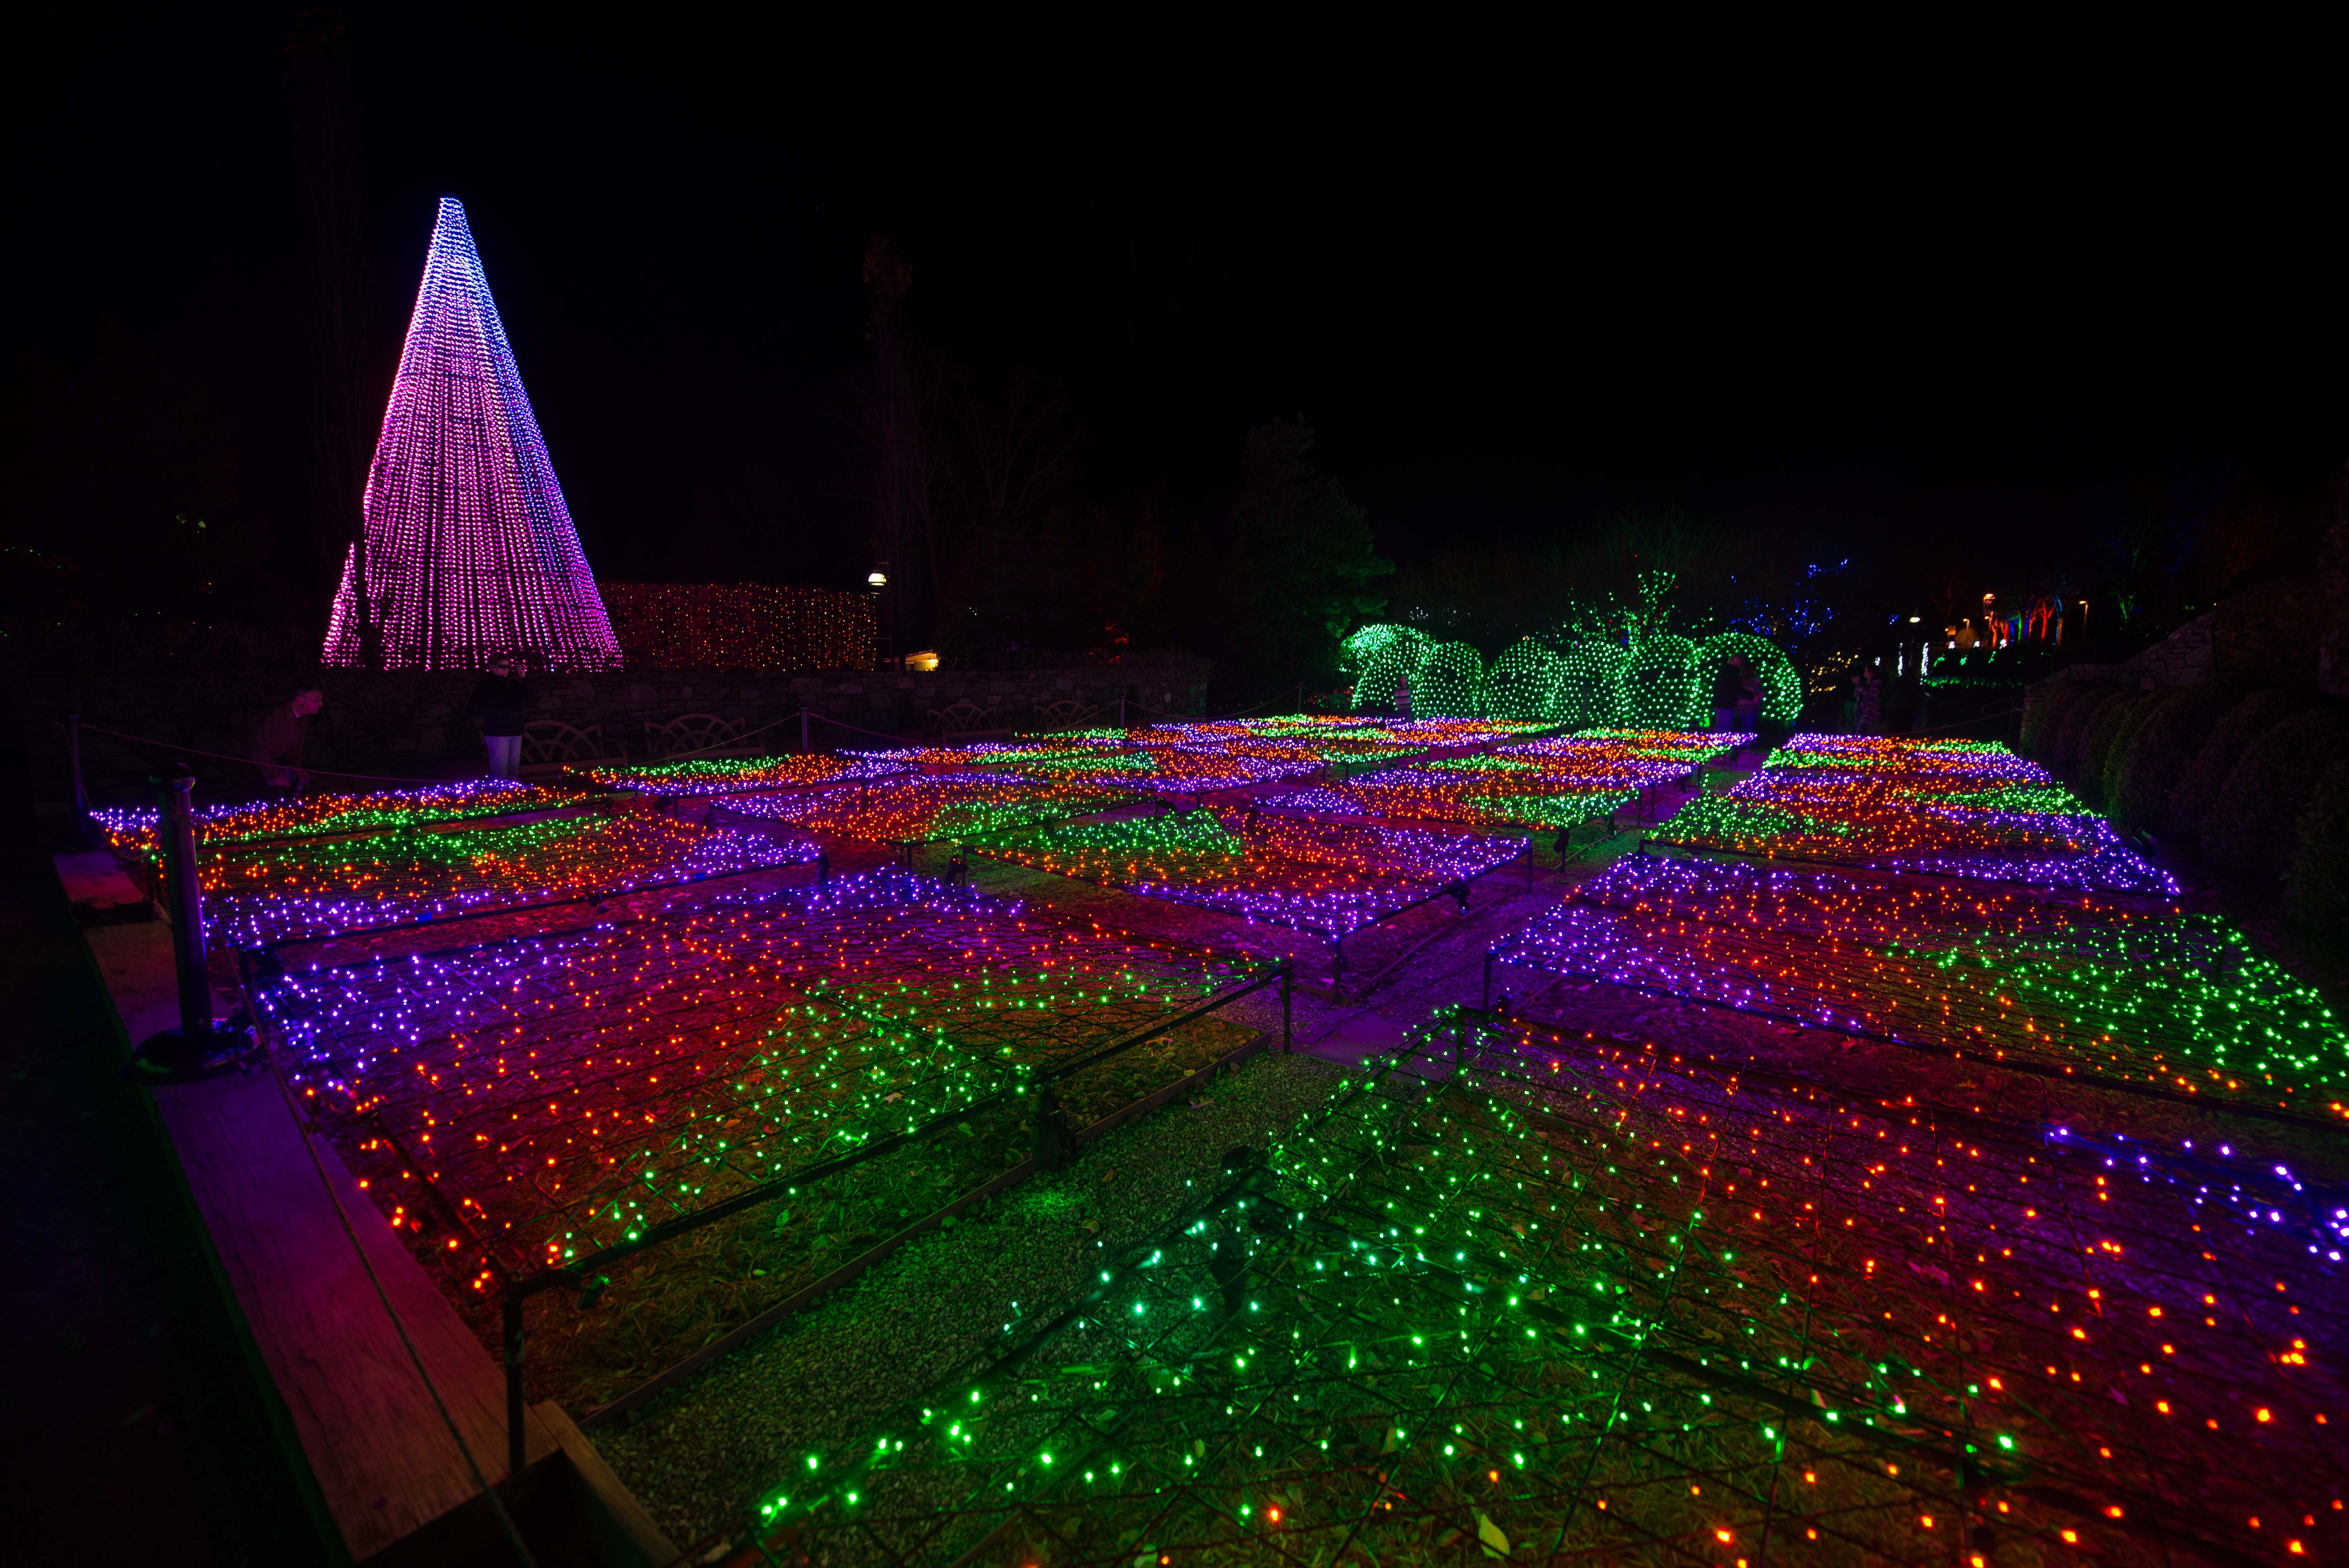 Winter Lights At The North Carolina Arboretum Mainly Southern Winter Lights  At The North Carolina Arboretum Places To See Holiday Lights In Asheville N  C ...